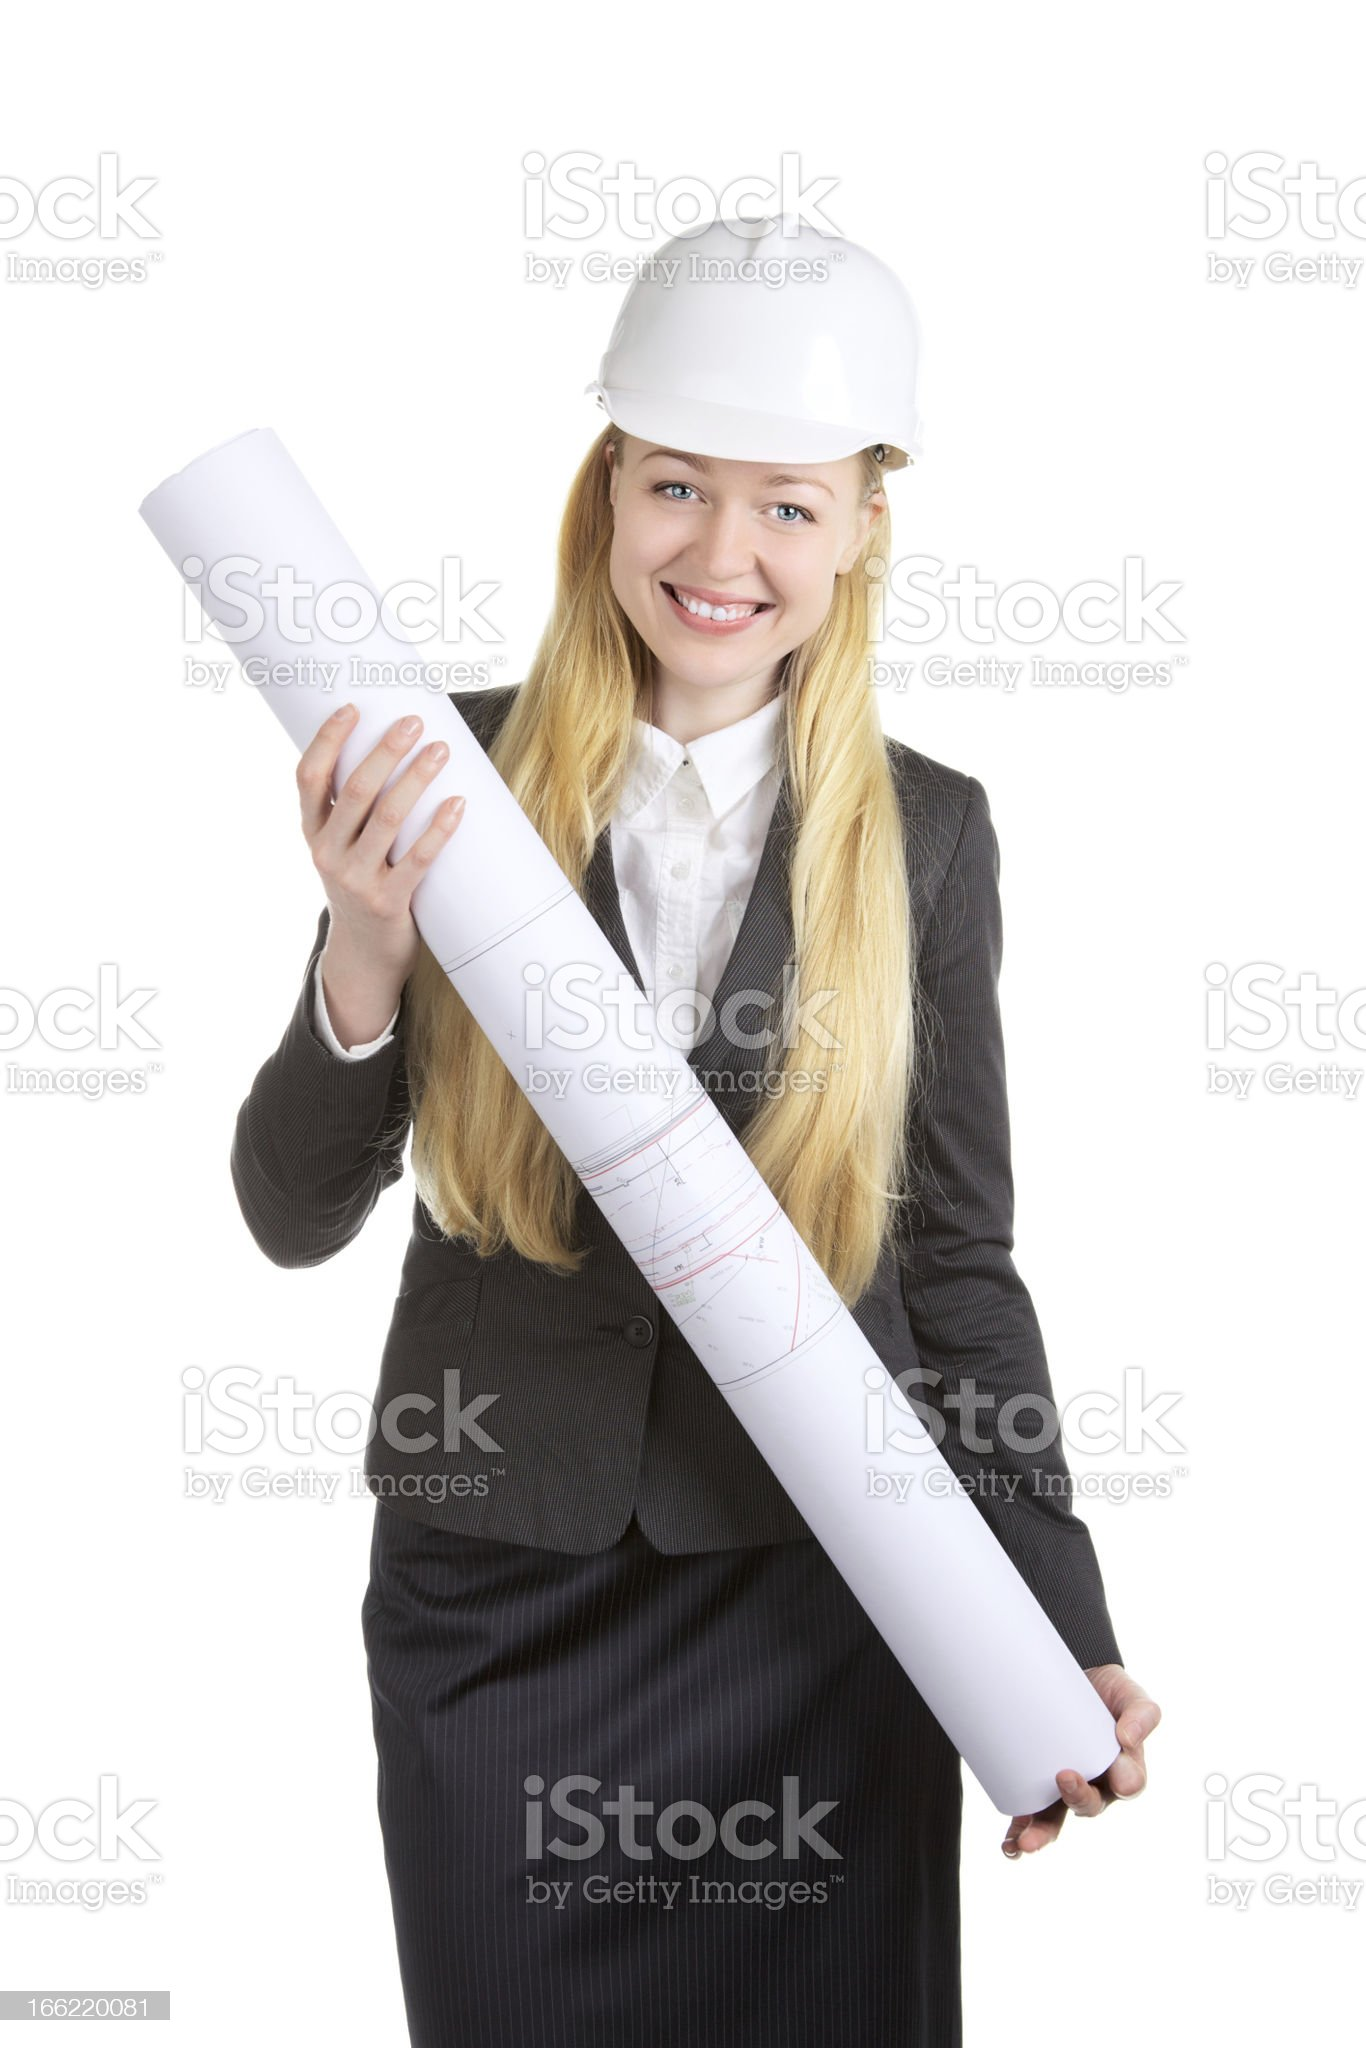 Engineer Woman royalty-free stock photo